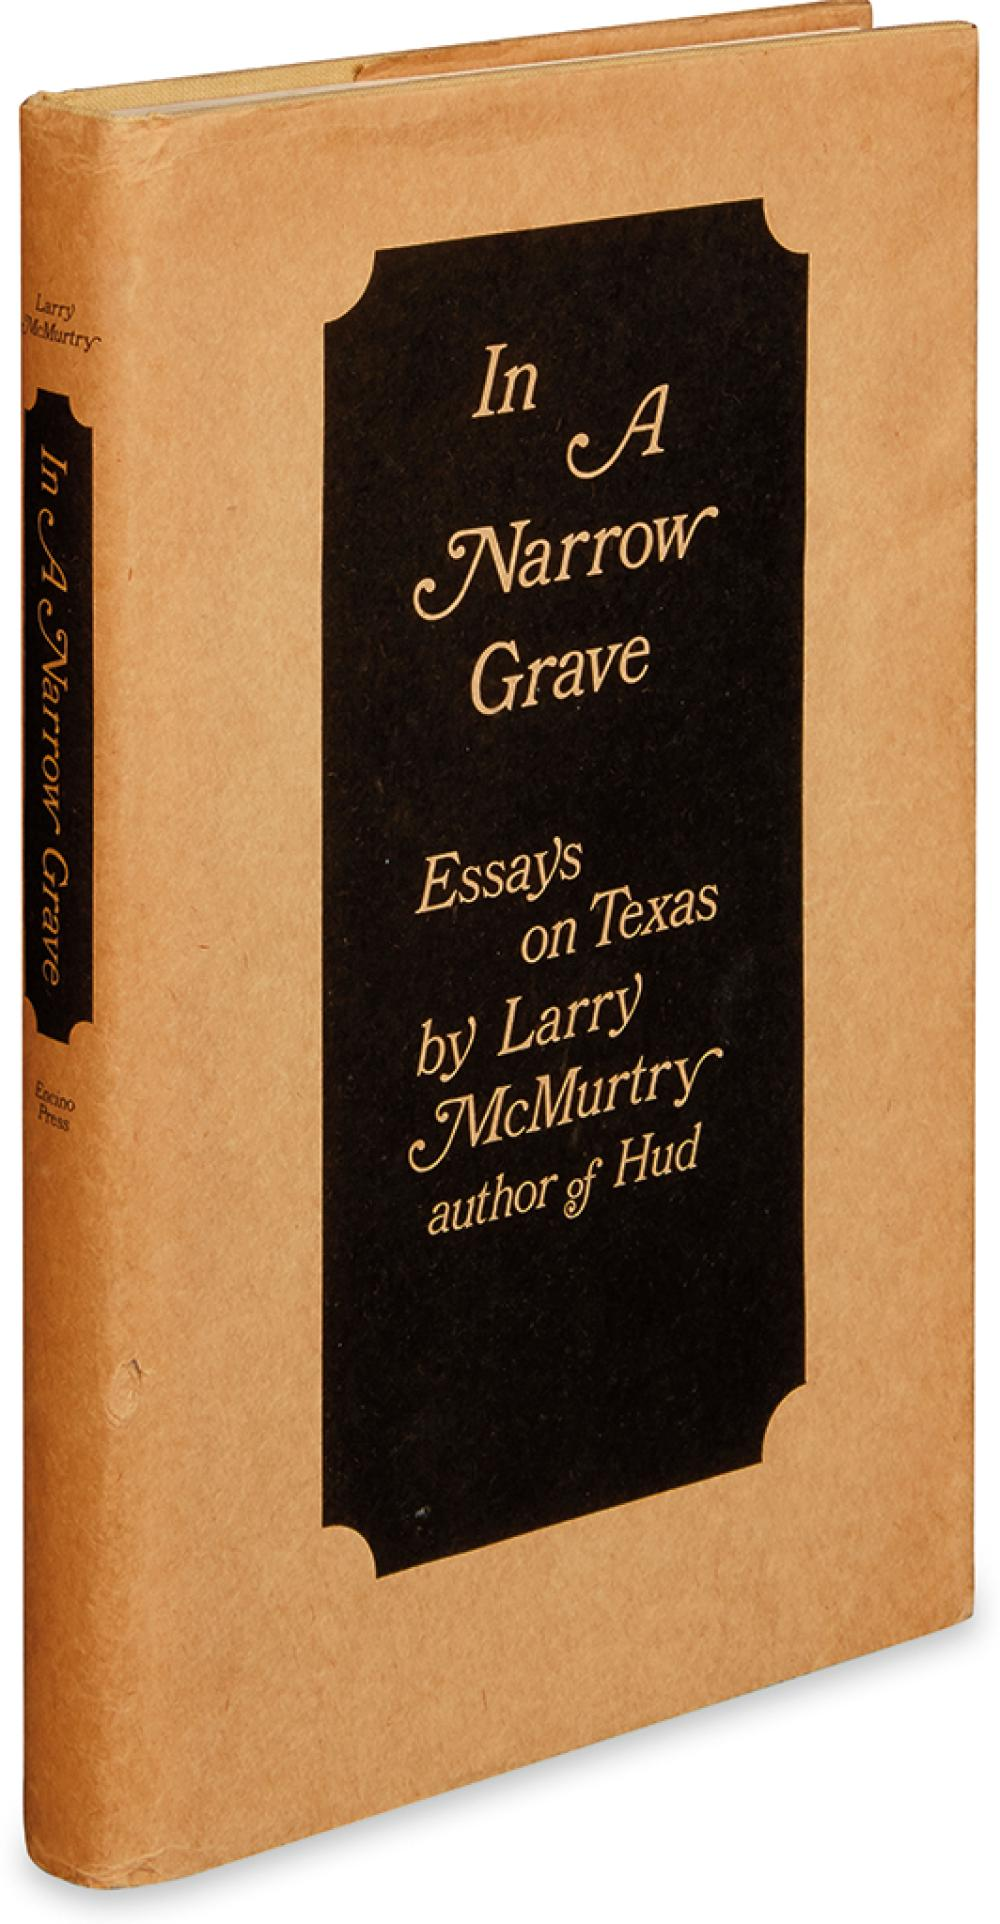 MCMURTRY, LARRY. In a Narrow Grave: Essays on Texas.